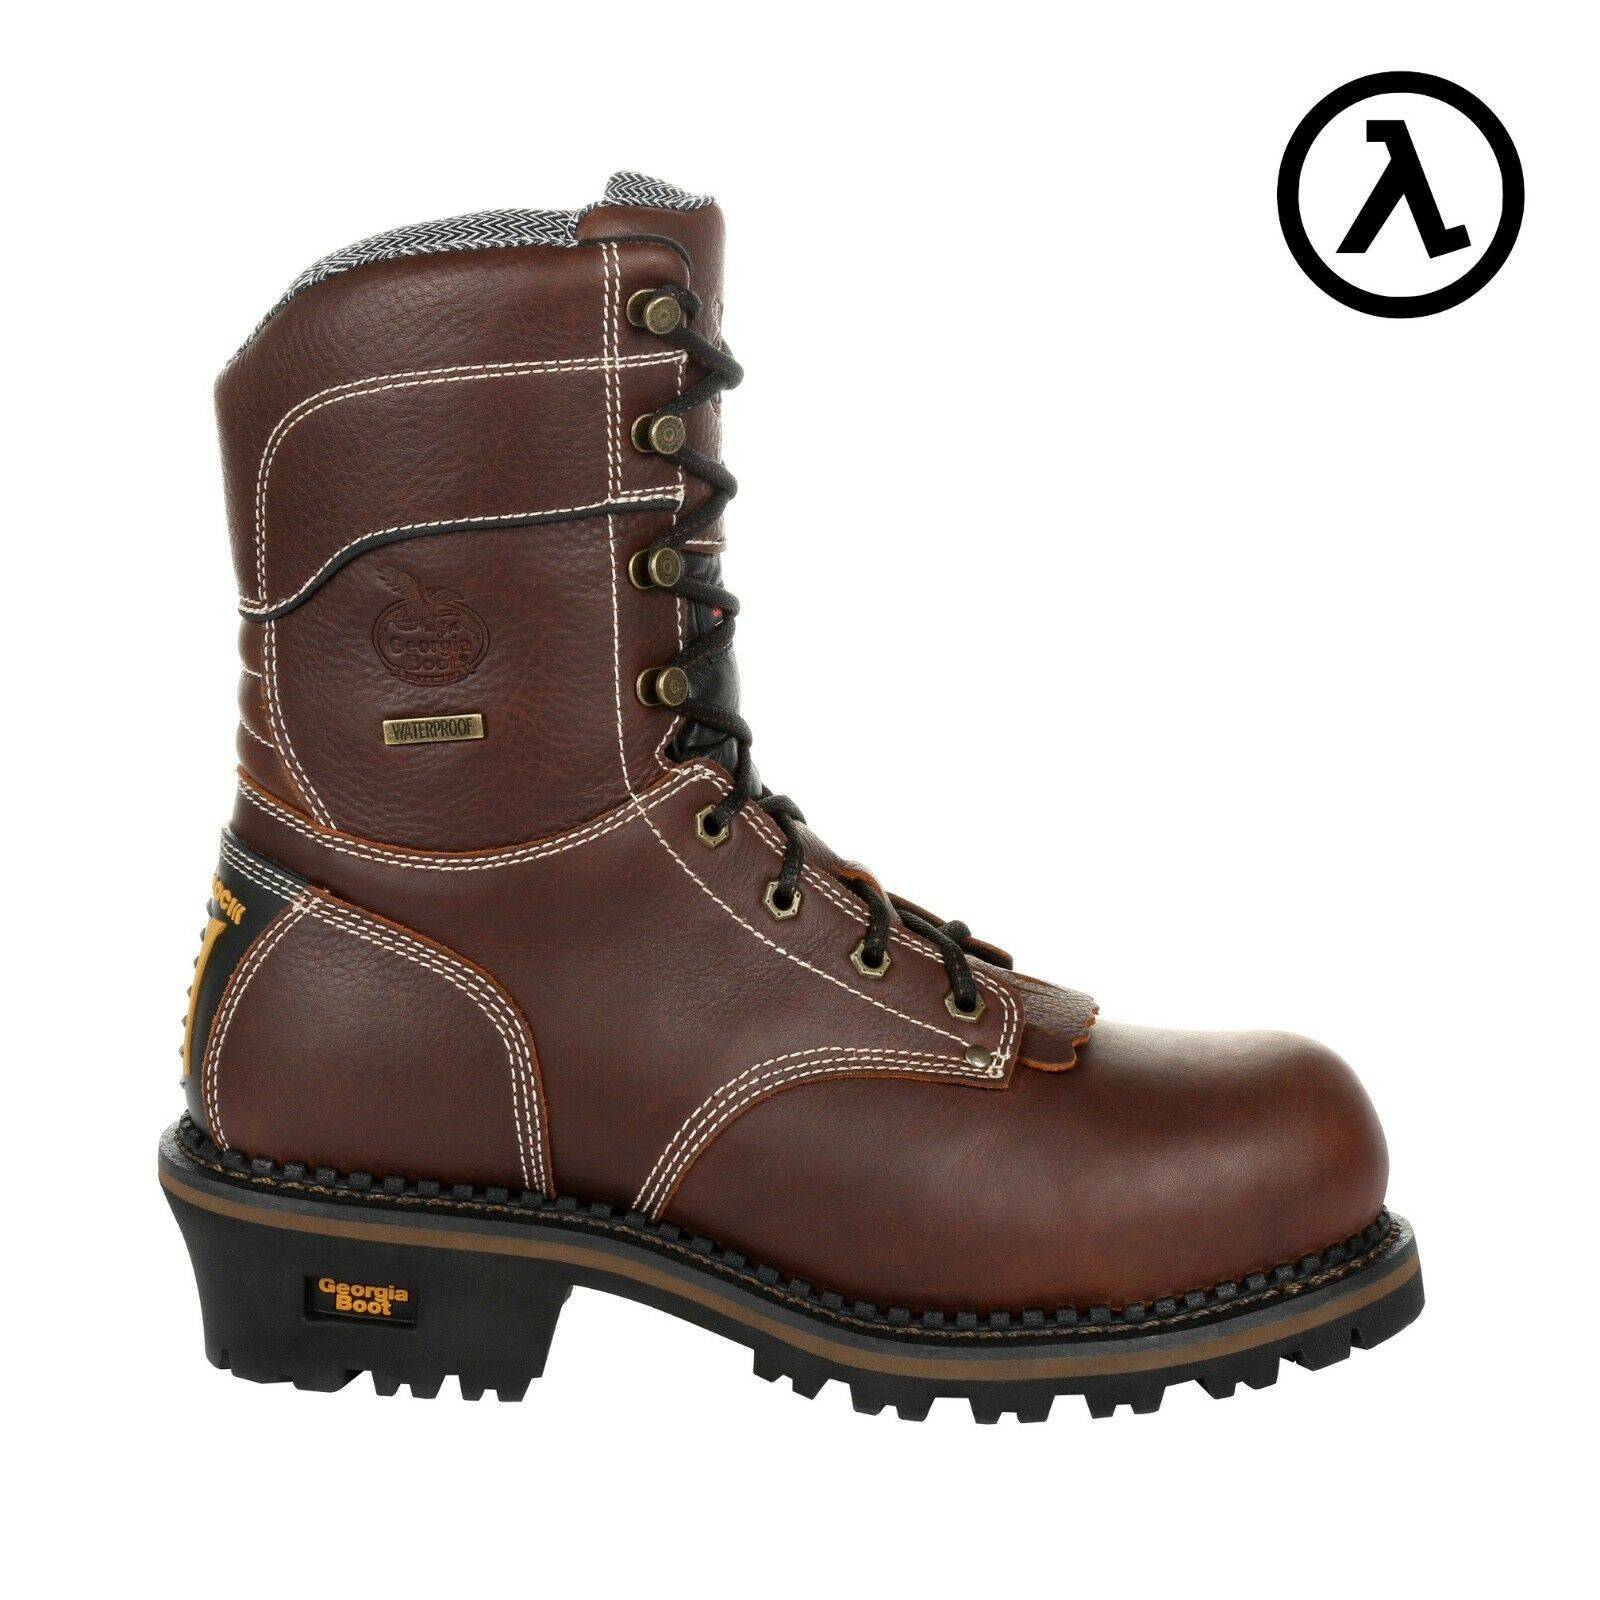 GEORGIA AMP LT LOGGER CT WATERPROOF 600G INSULATED WORK BOOTS GB00262 ALL SIZES